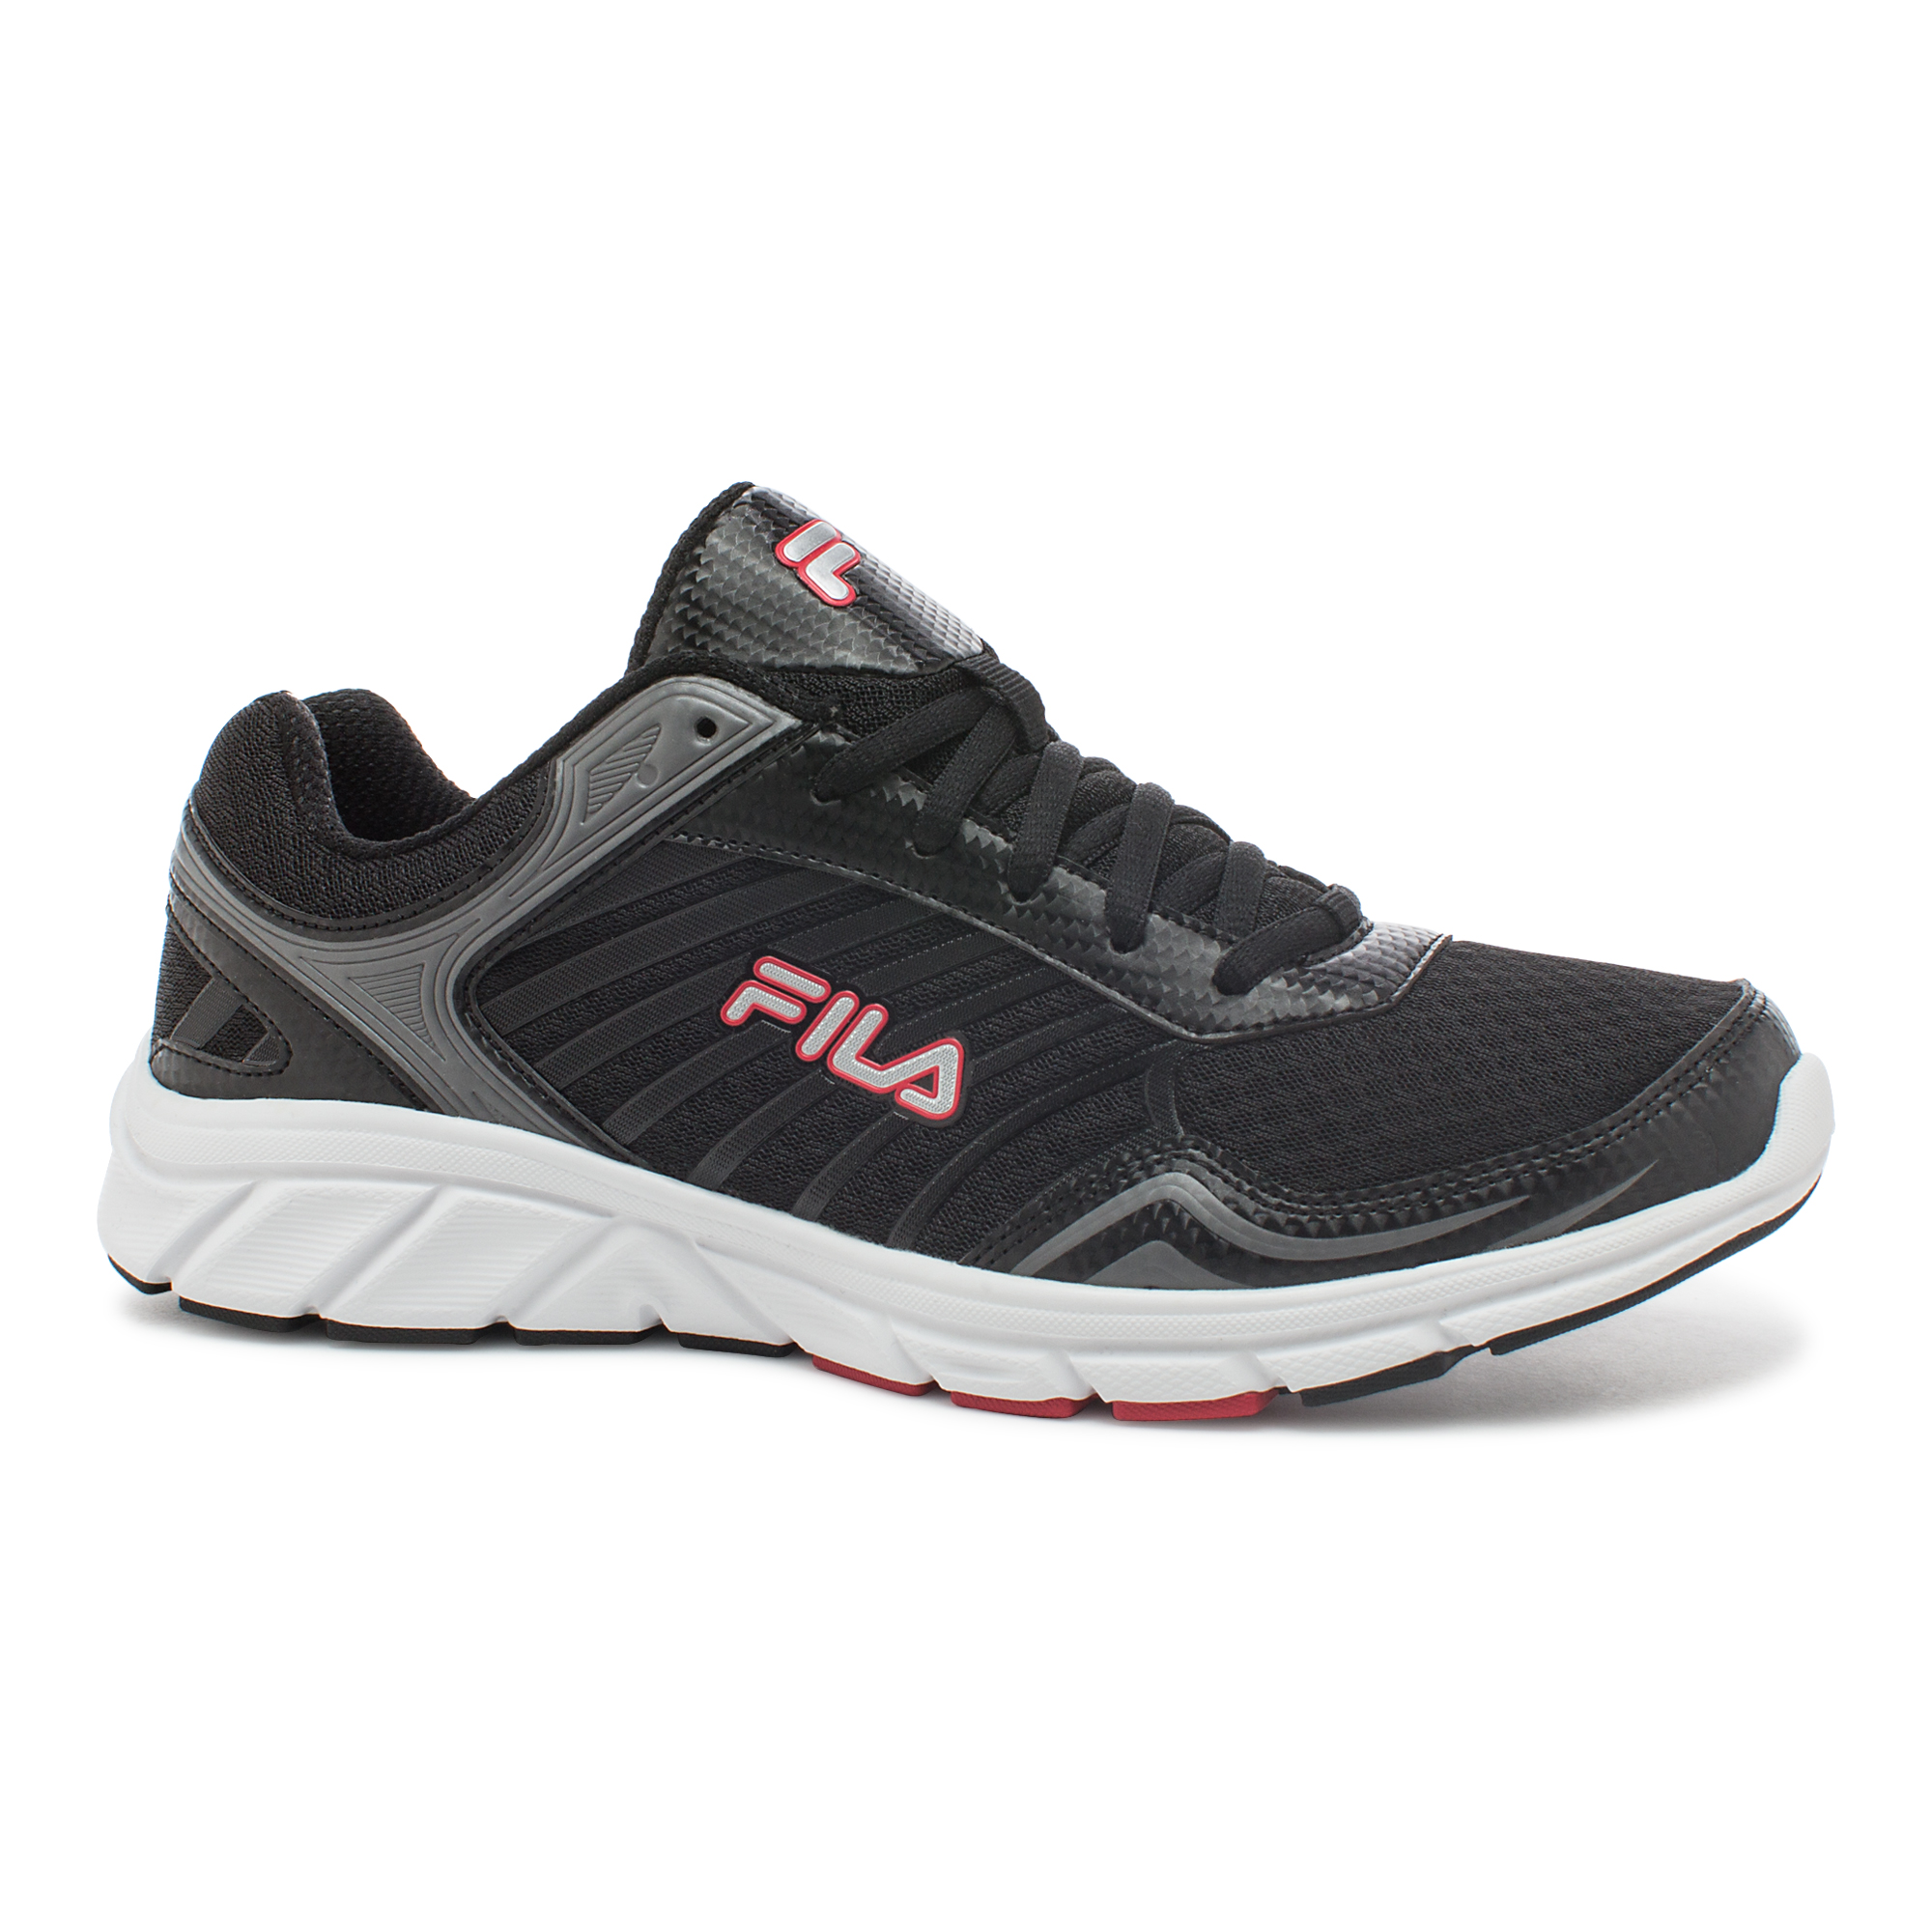 Mens Fila Shoes Ebay